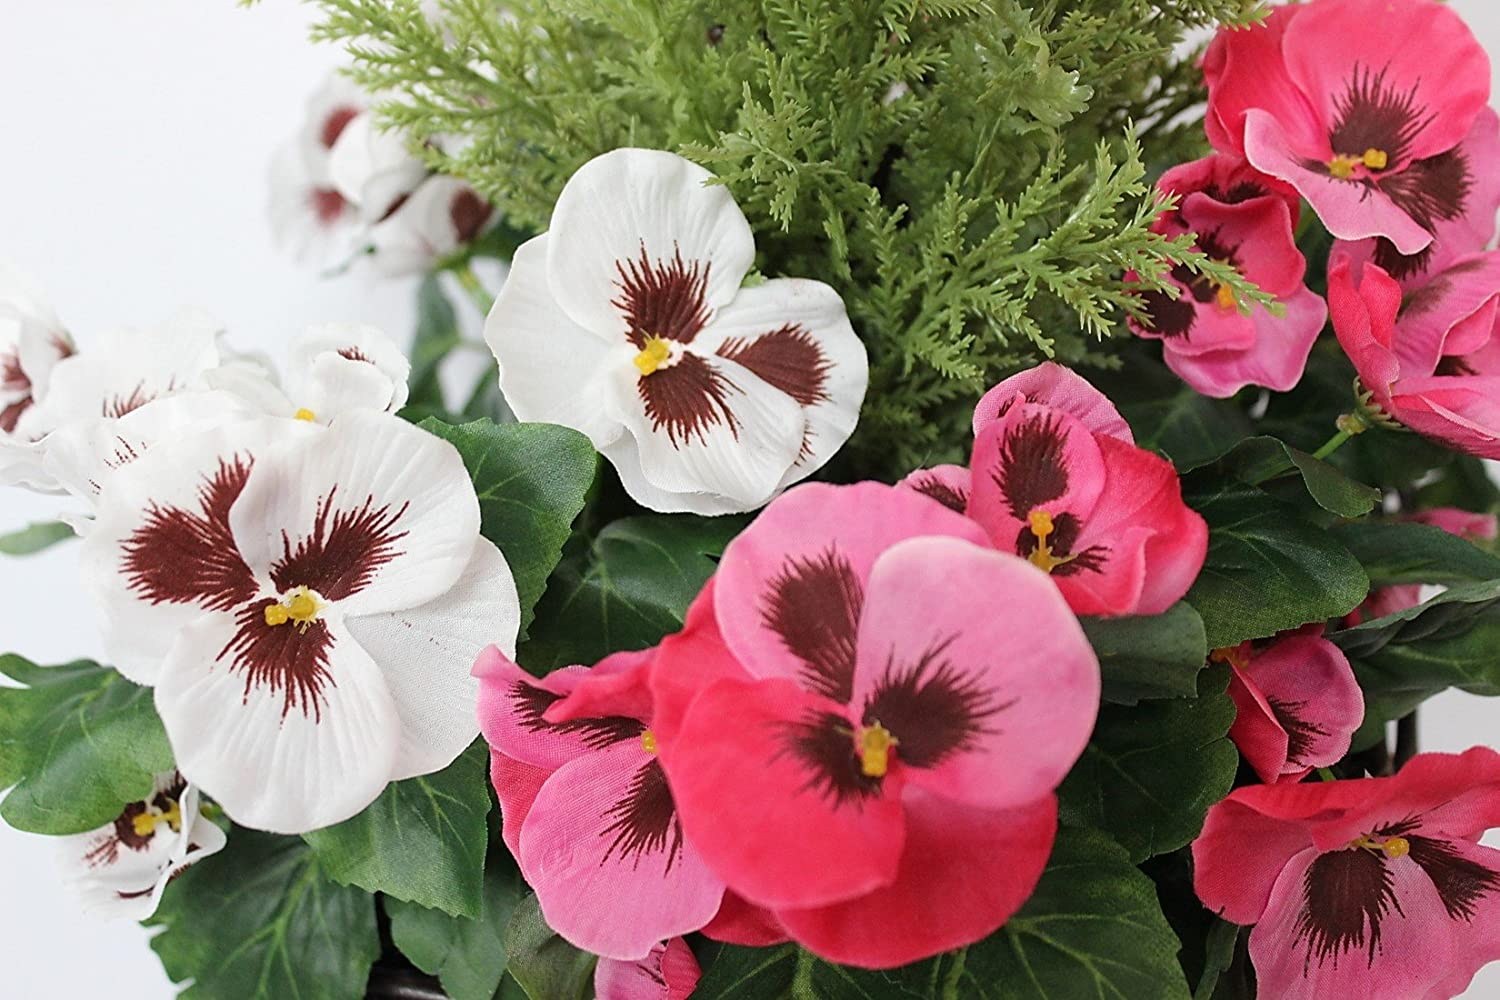 Artificial Patio Planter with Pink /& White Pansies /& Conifer//Cedar Topiary in Black Pot 60cm